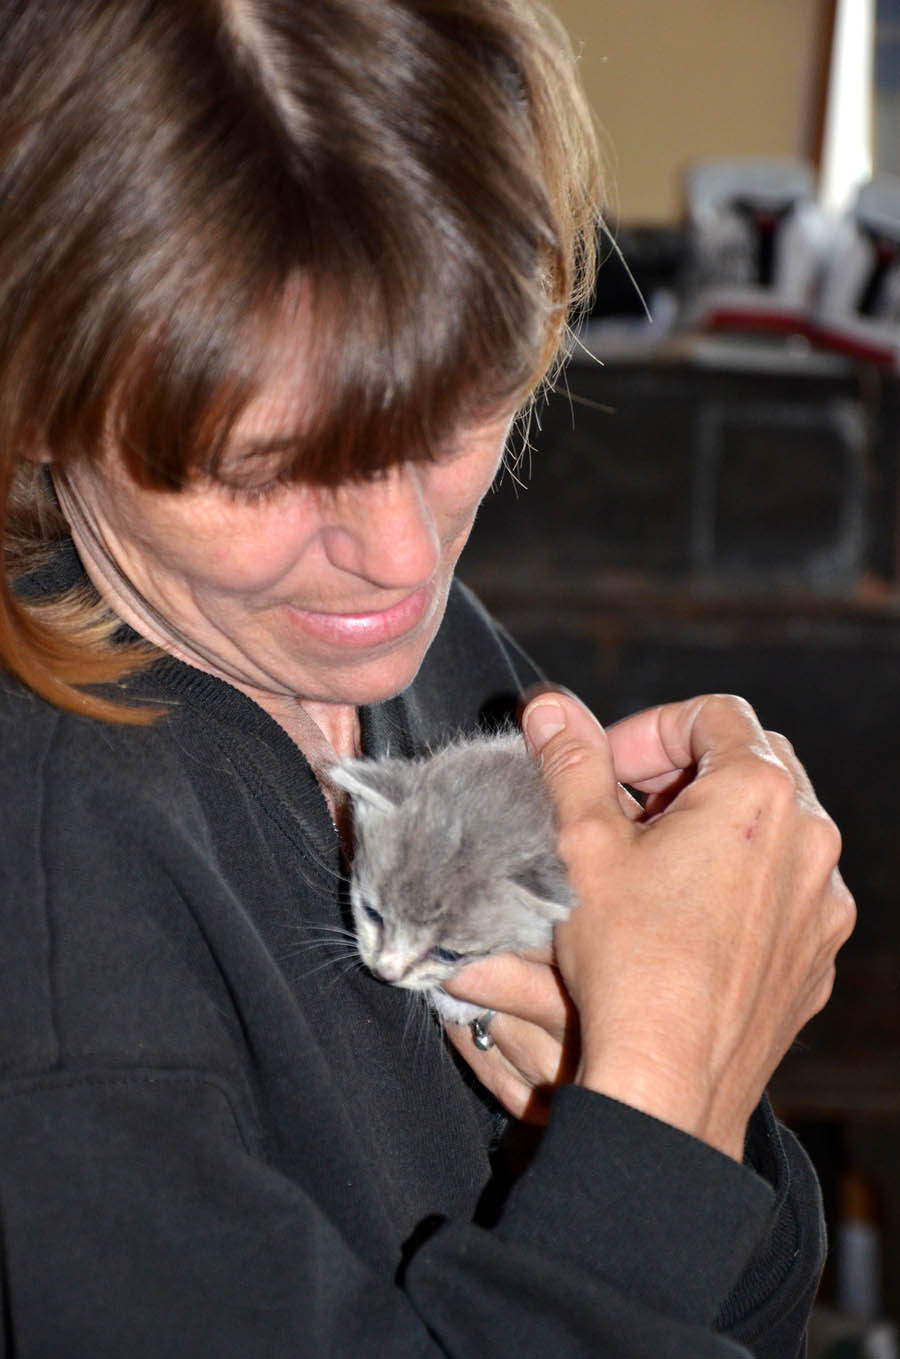 Catworking through Kim and Baby Kitty